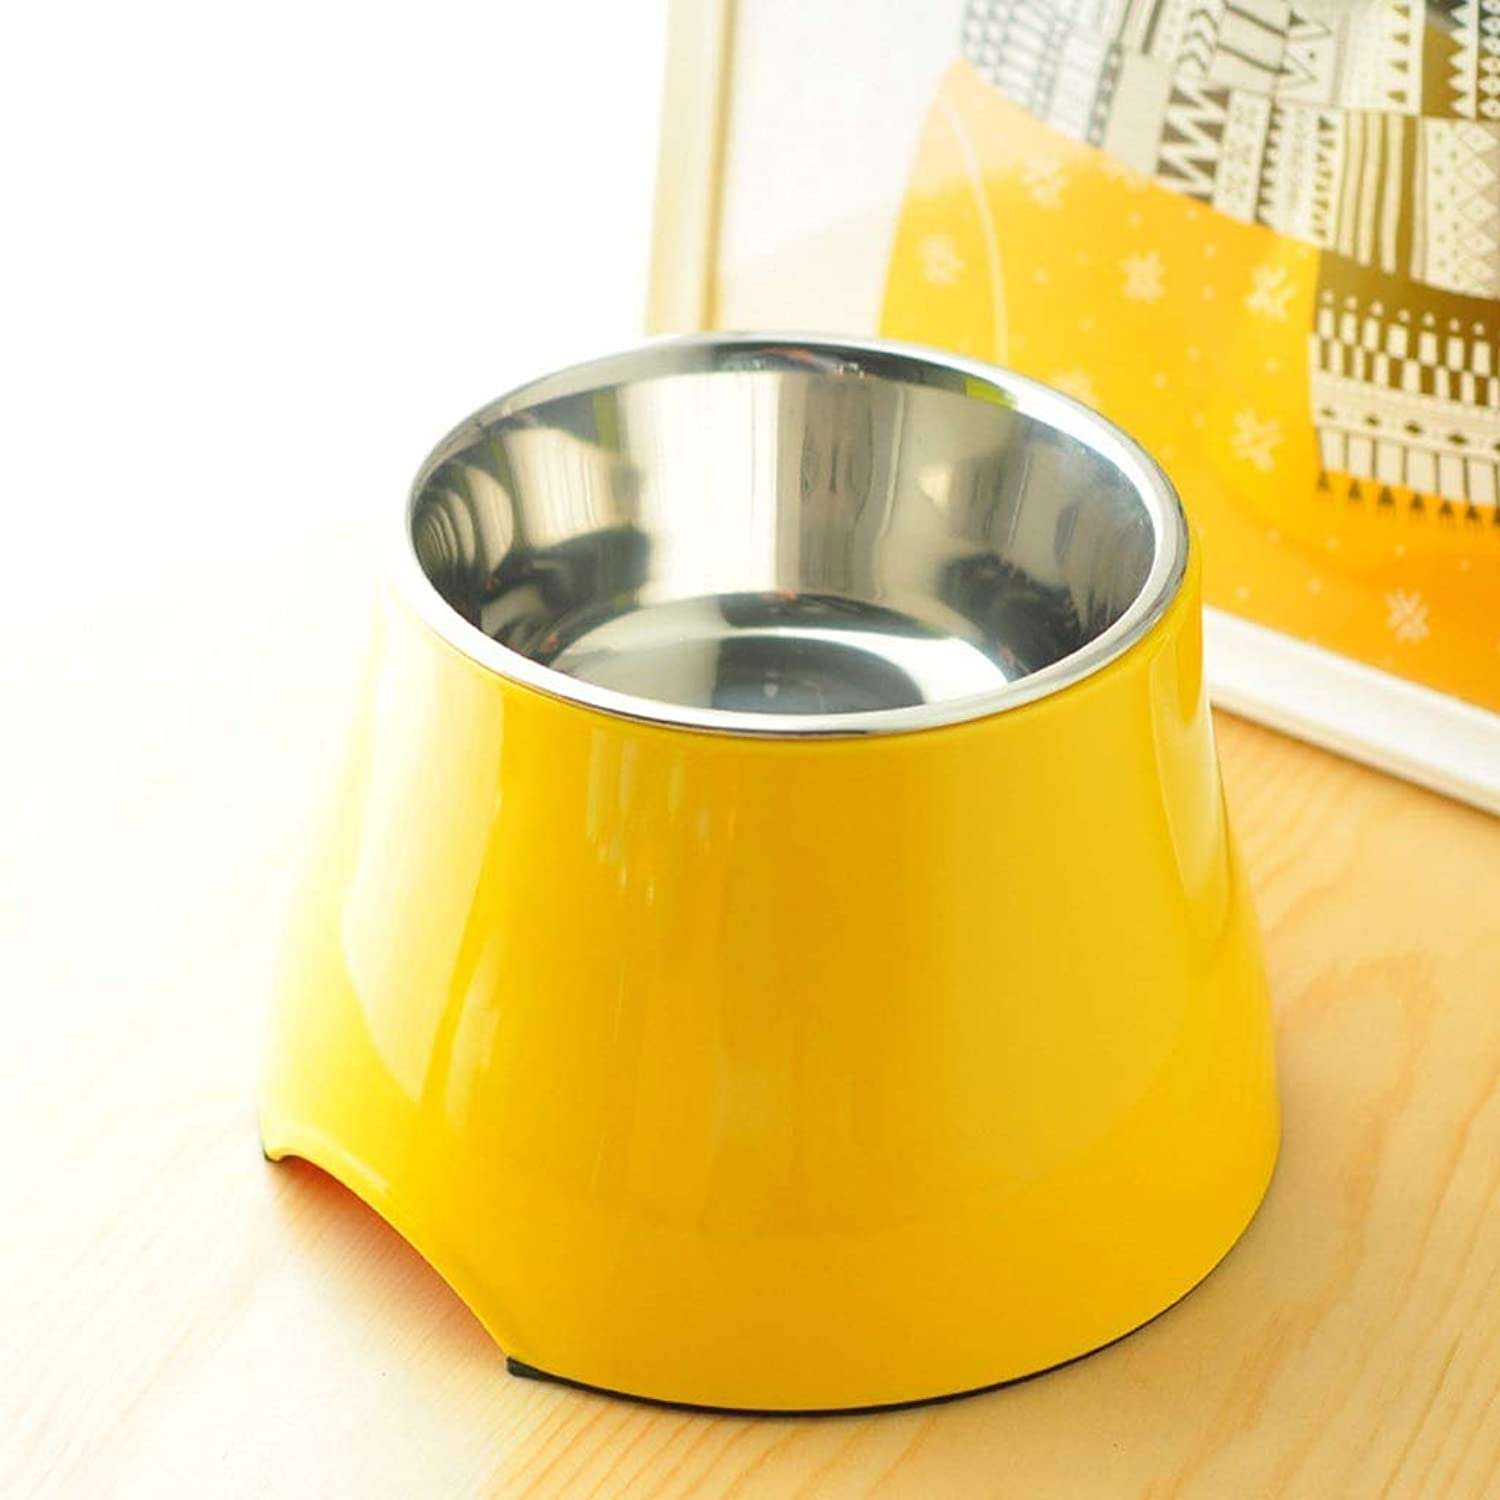 ANDRE HOME Dog Food Bowl Large Dog Stainless Steel High Bowl Cat Bowl Yellow Pet Supplies (Size   S)